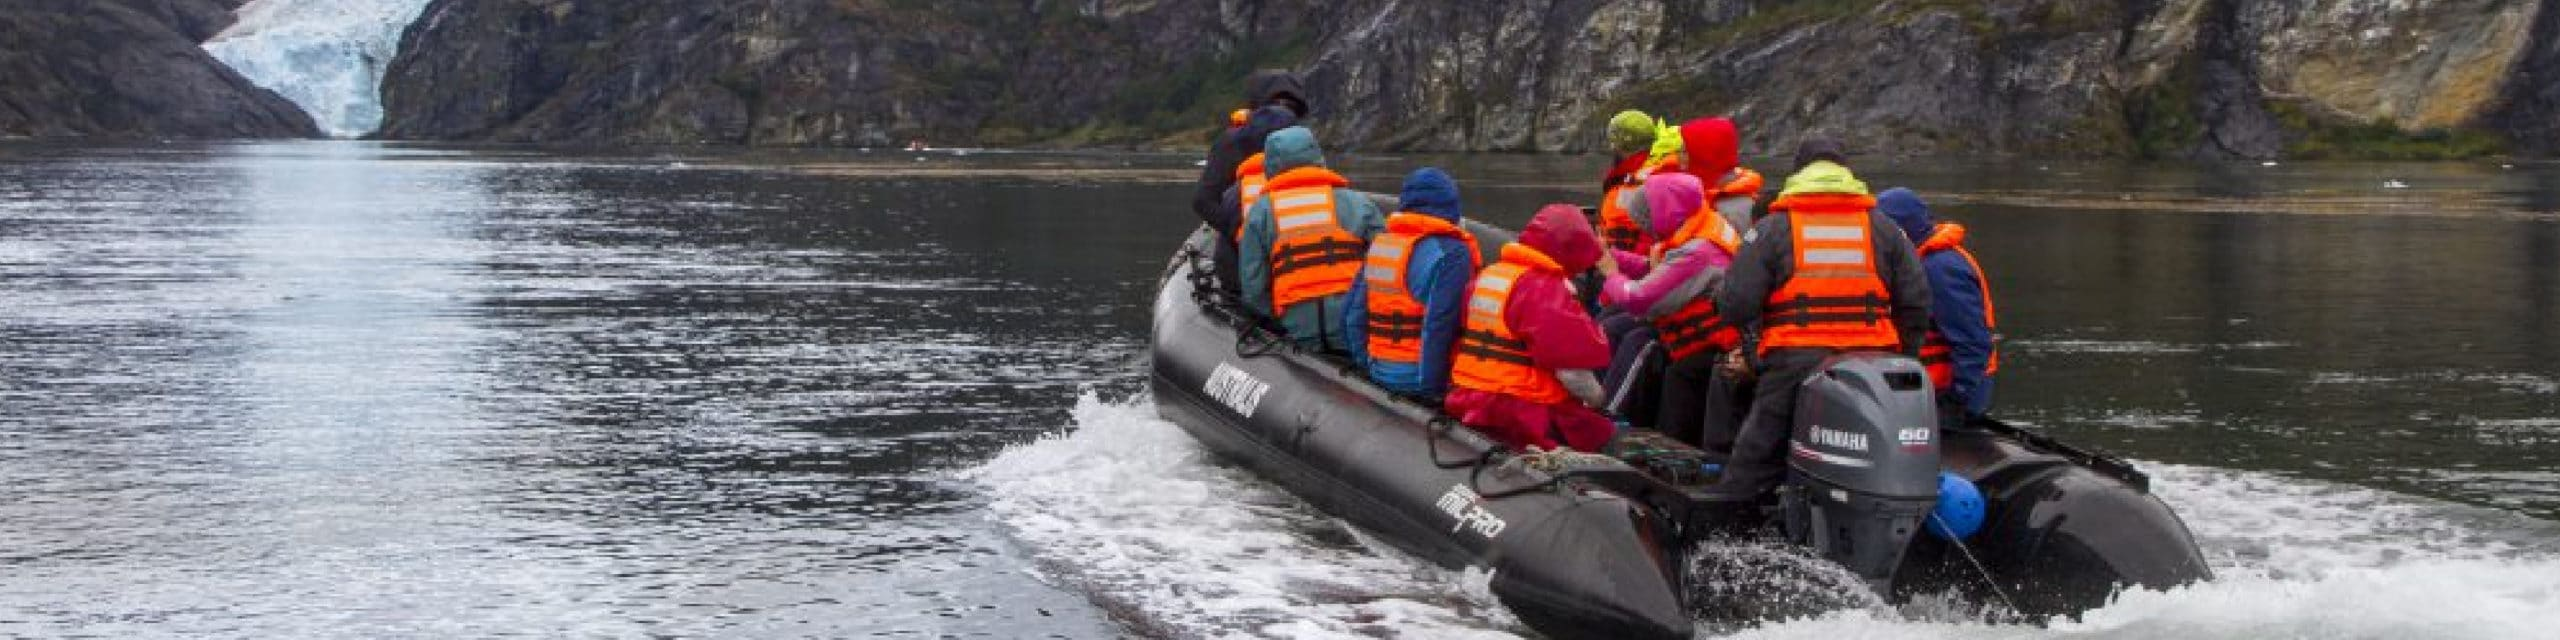 Australis Cruises to Cape Horn and Southern Fjords and Glaciers in Patagonia - Expedition Cruises in Patagonia - RipioTurismo DMC for Argentina and Chile